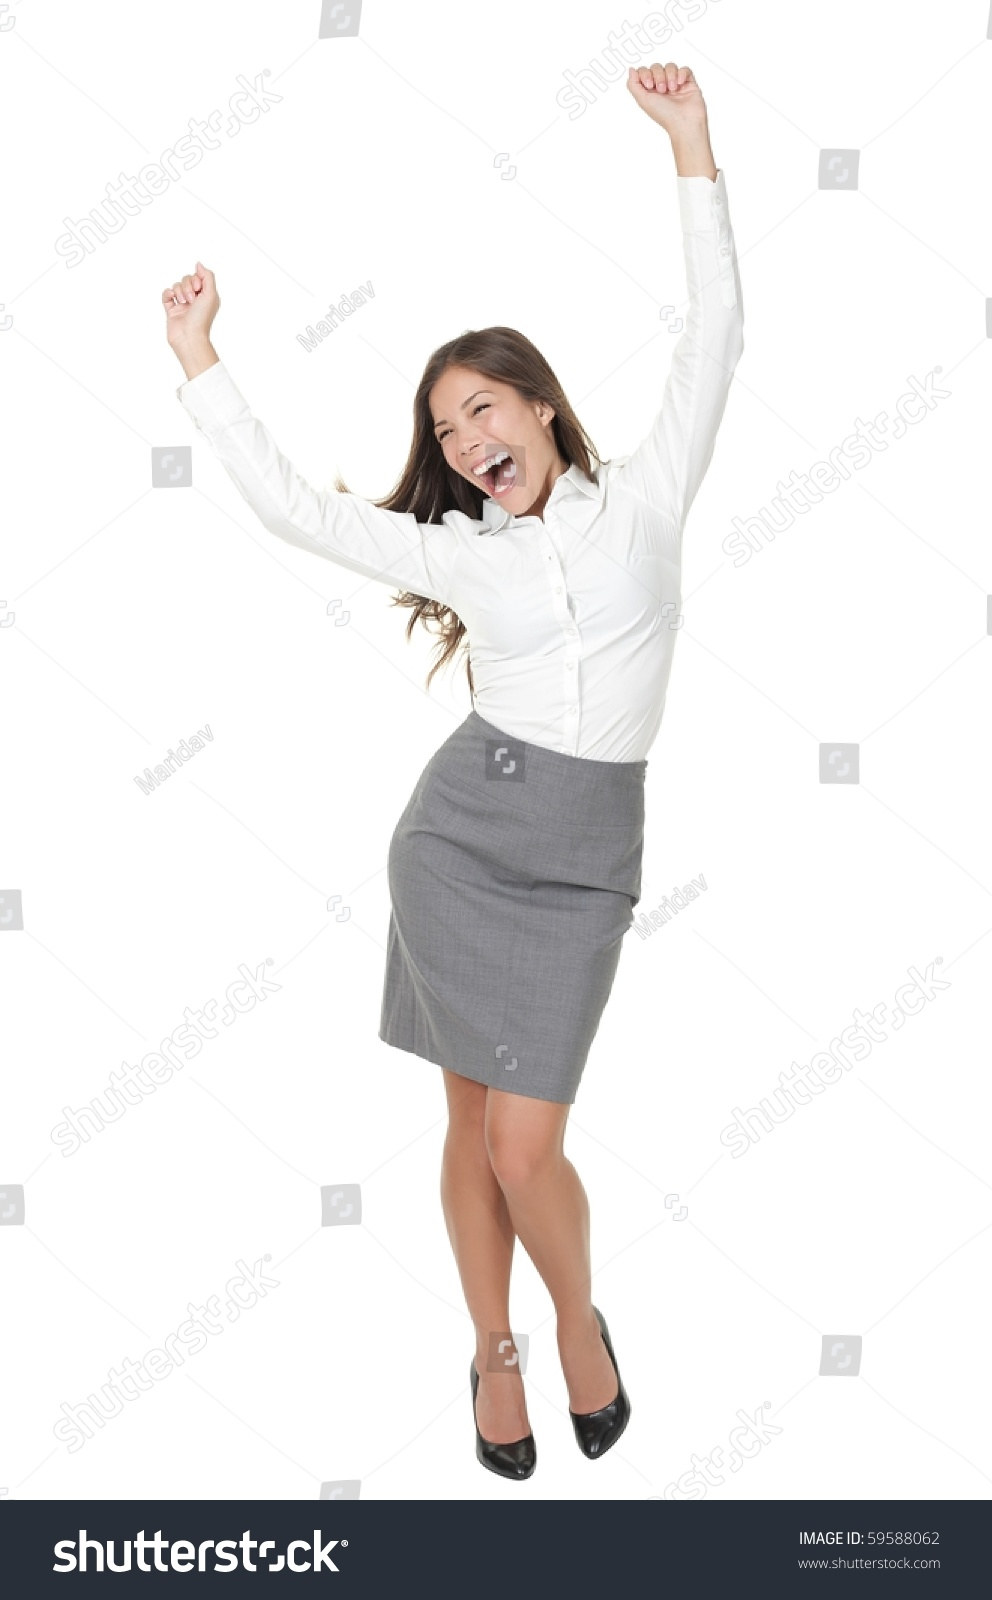 success w celebrating winner dance casual stock photo  success w celebrating in winner dance casual young successful businessw dancing very happy full